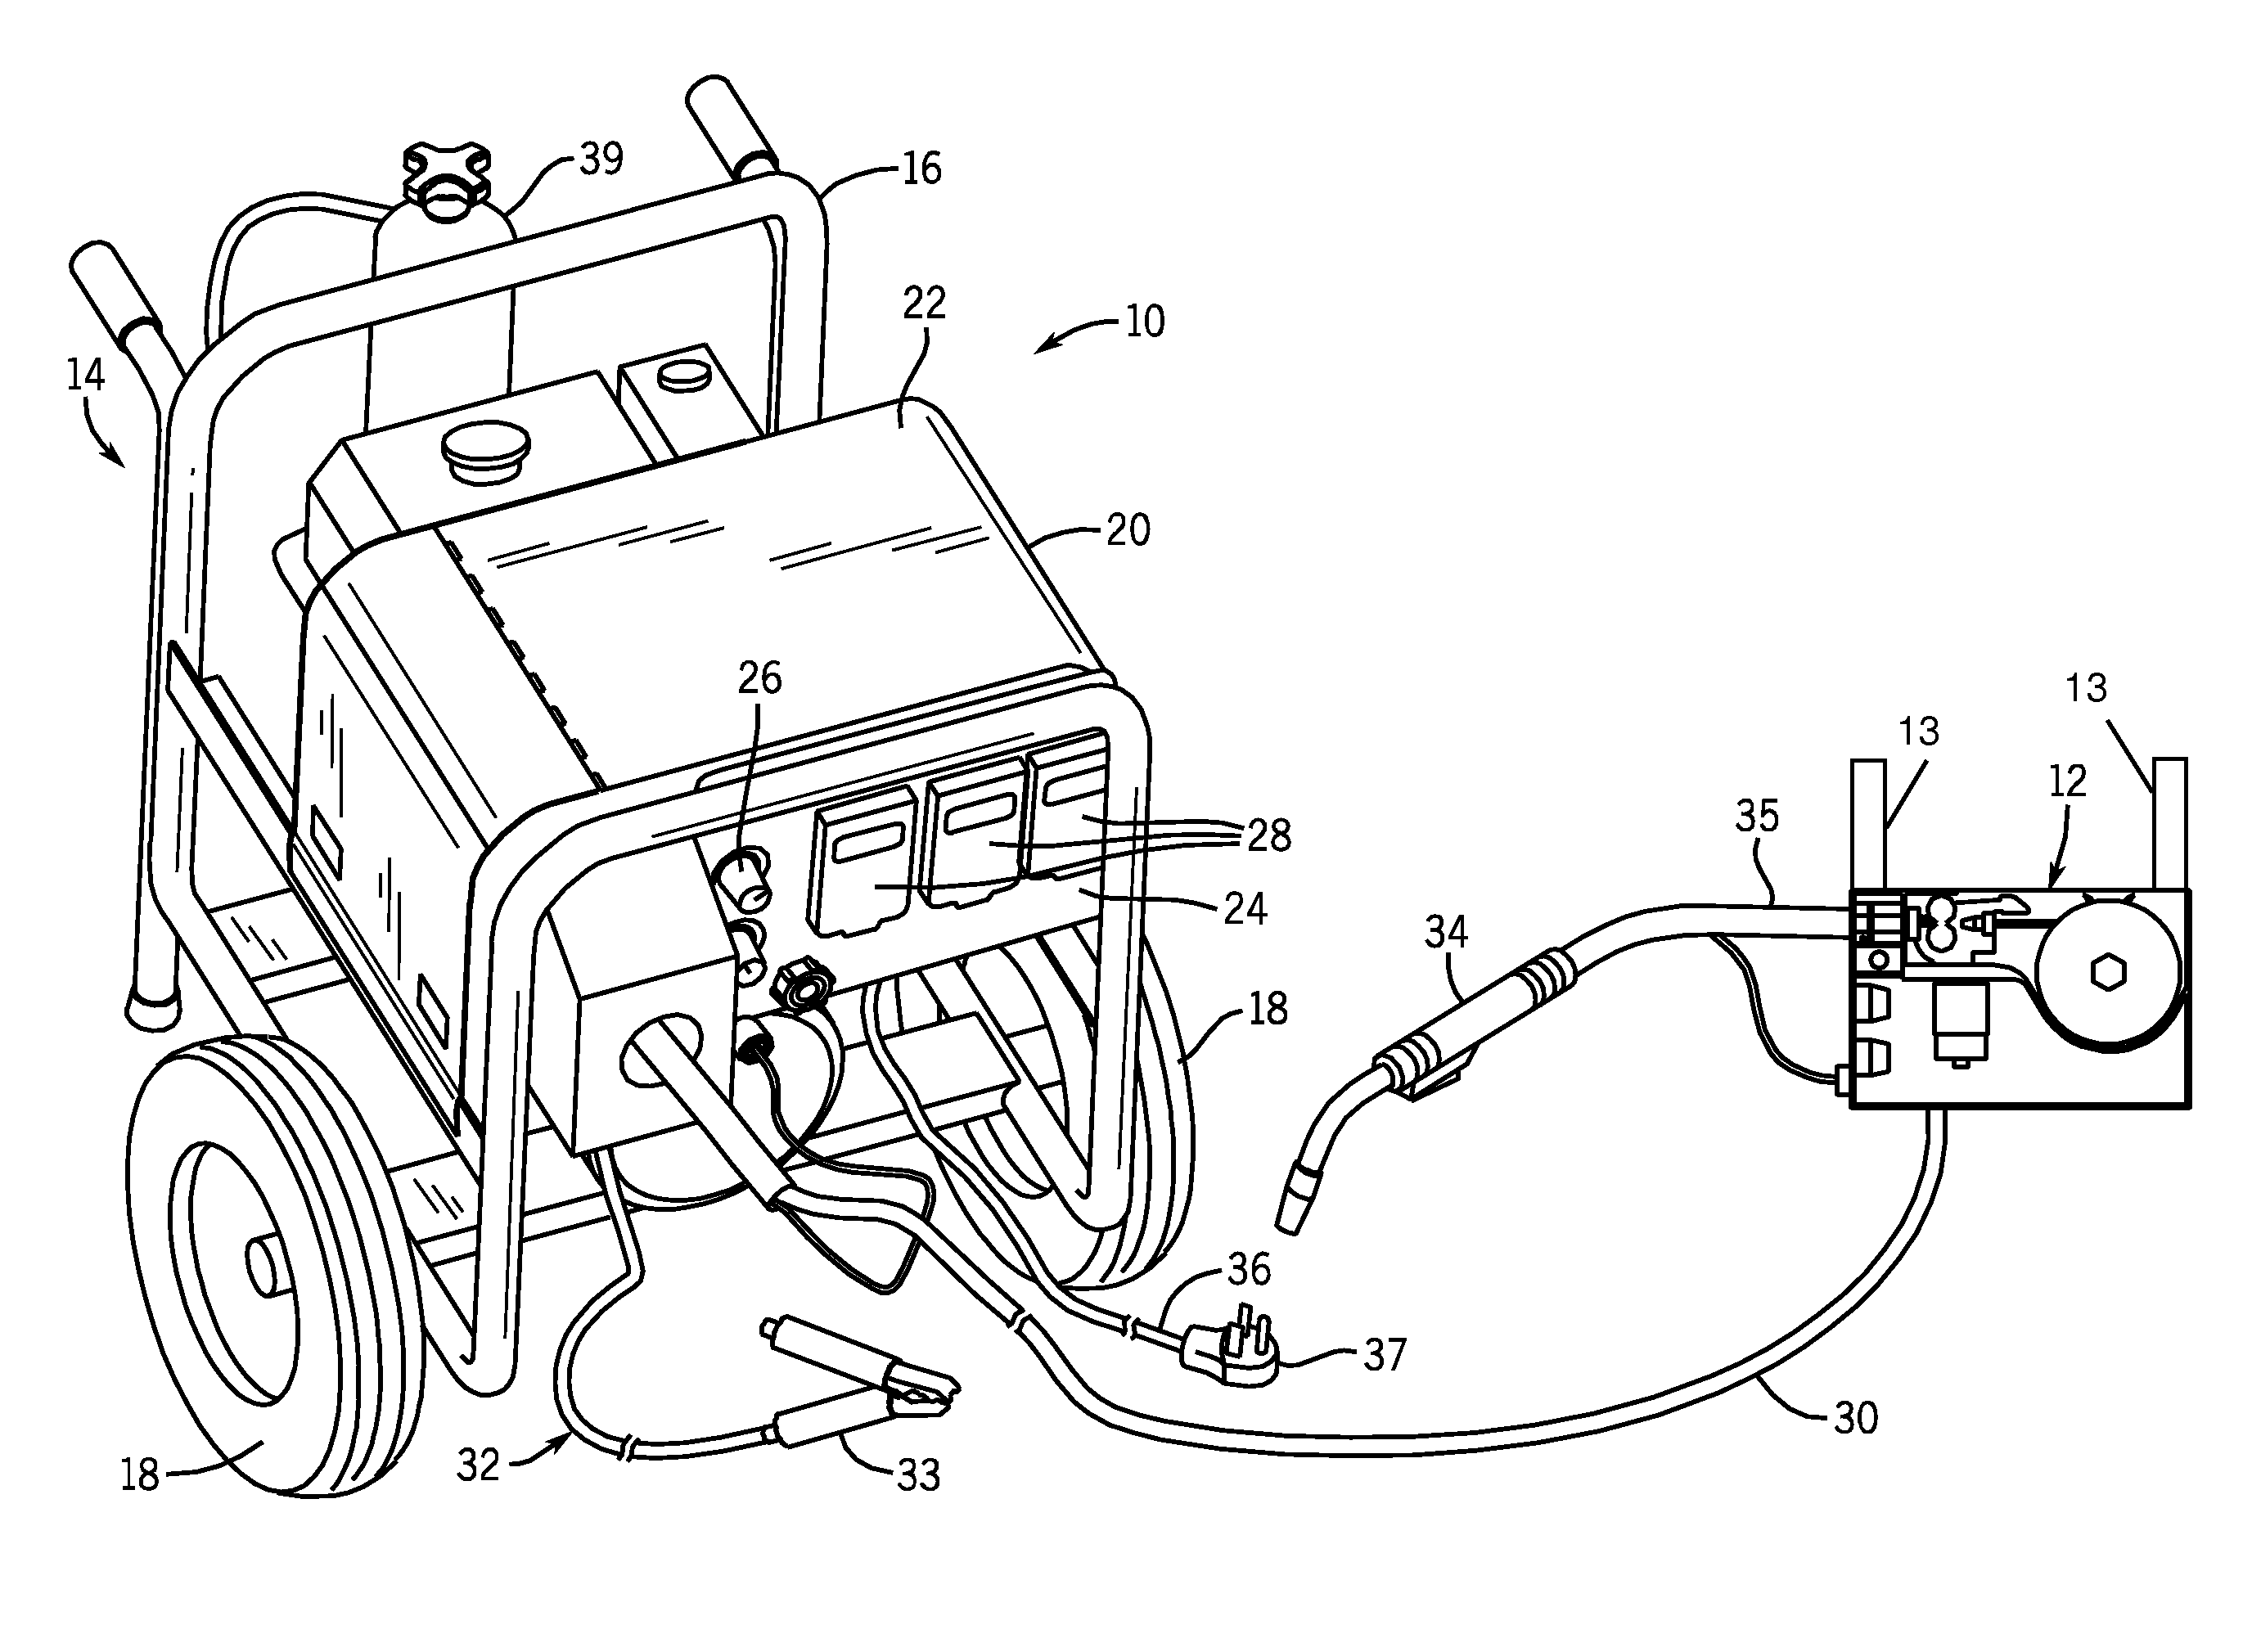 patent us8476555 - portable welding wire feed system and method